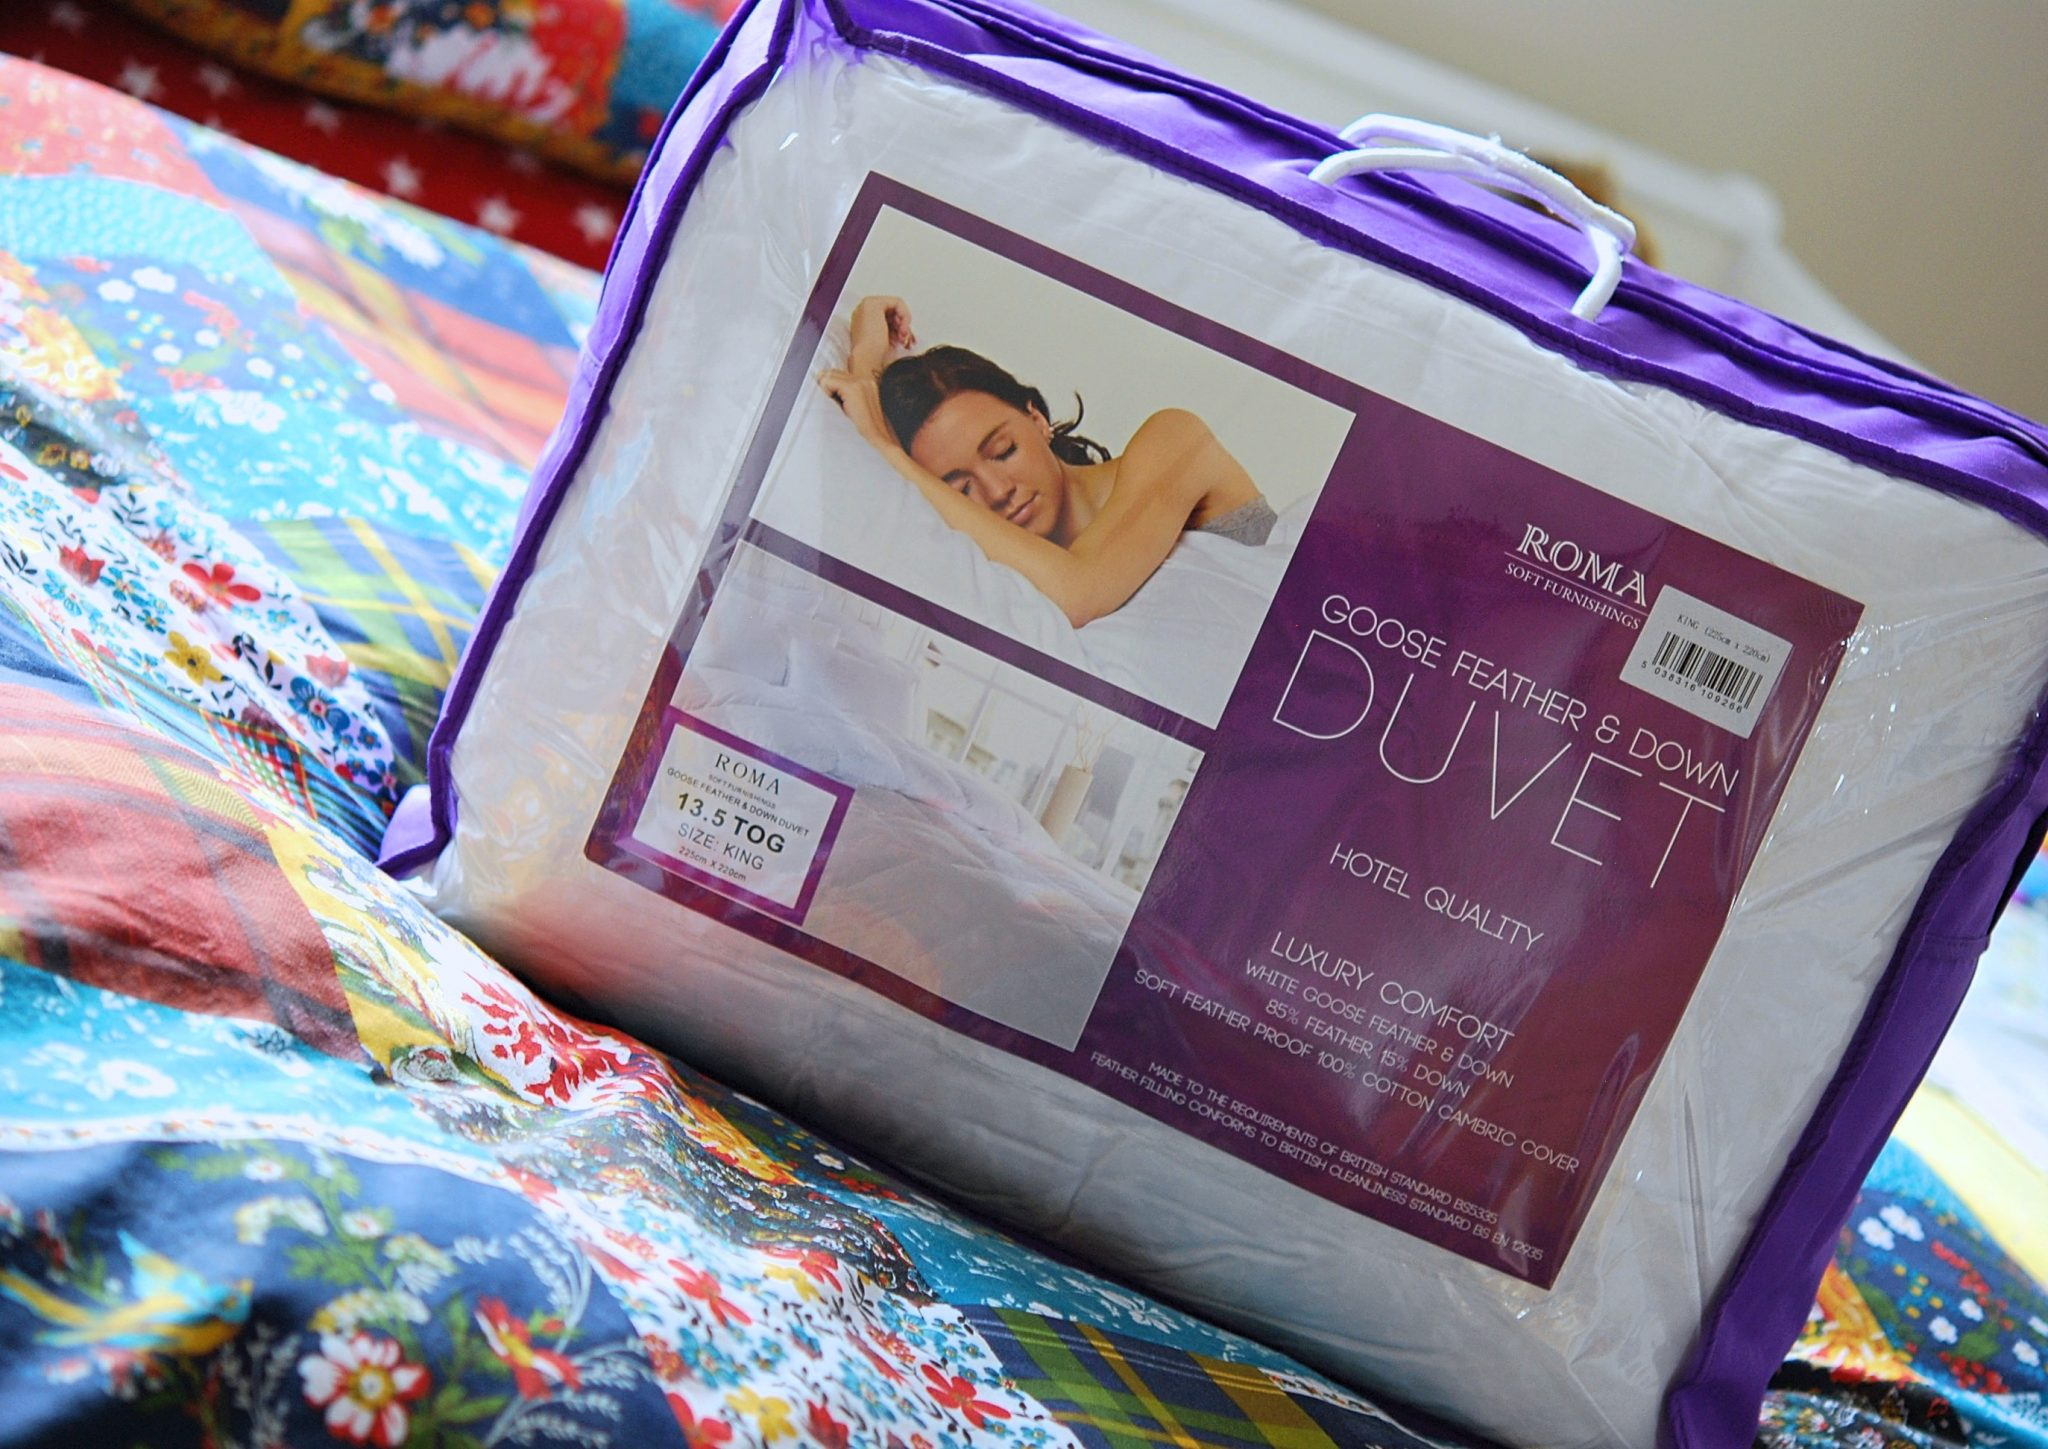 Goose Feather Down Duvet Review - The Towel Shop | Your Food Fantasy